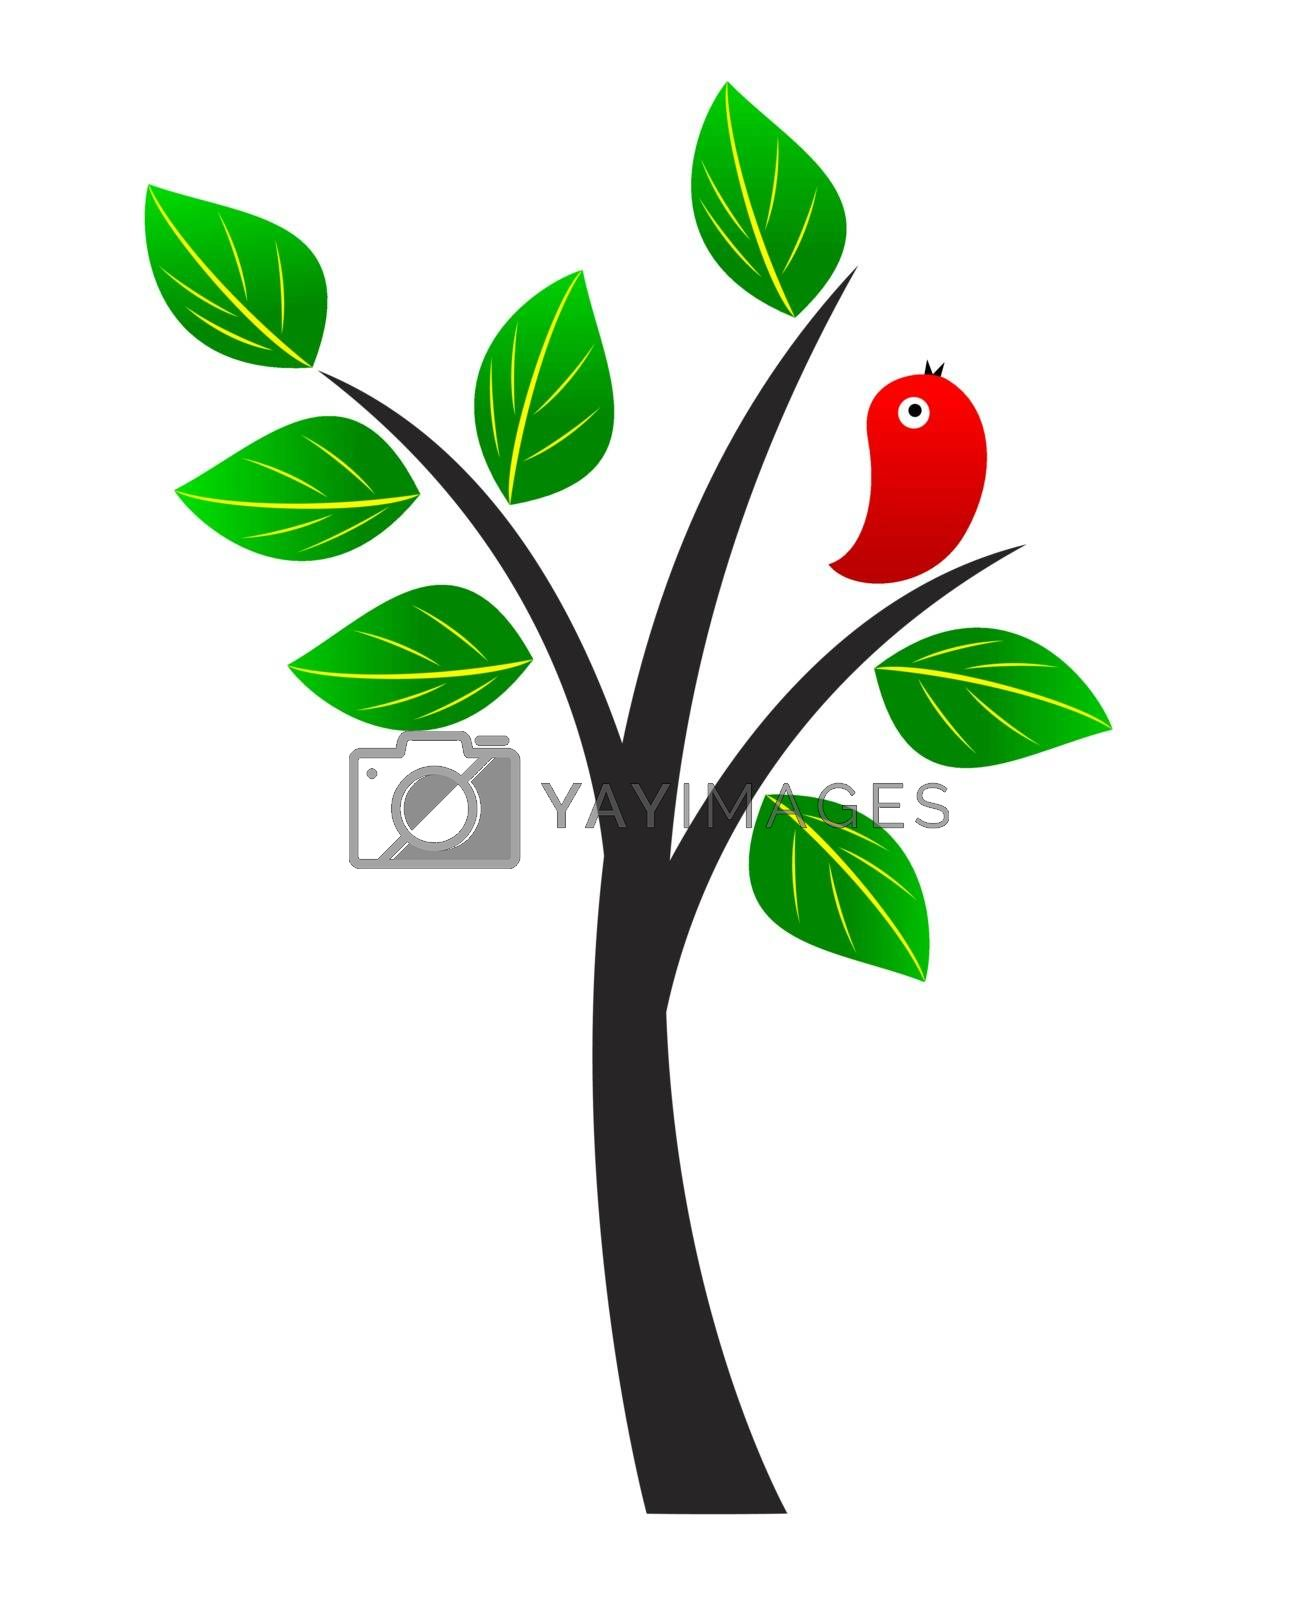 Tree with green leaves and red bird.